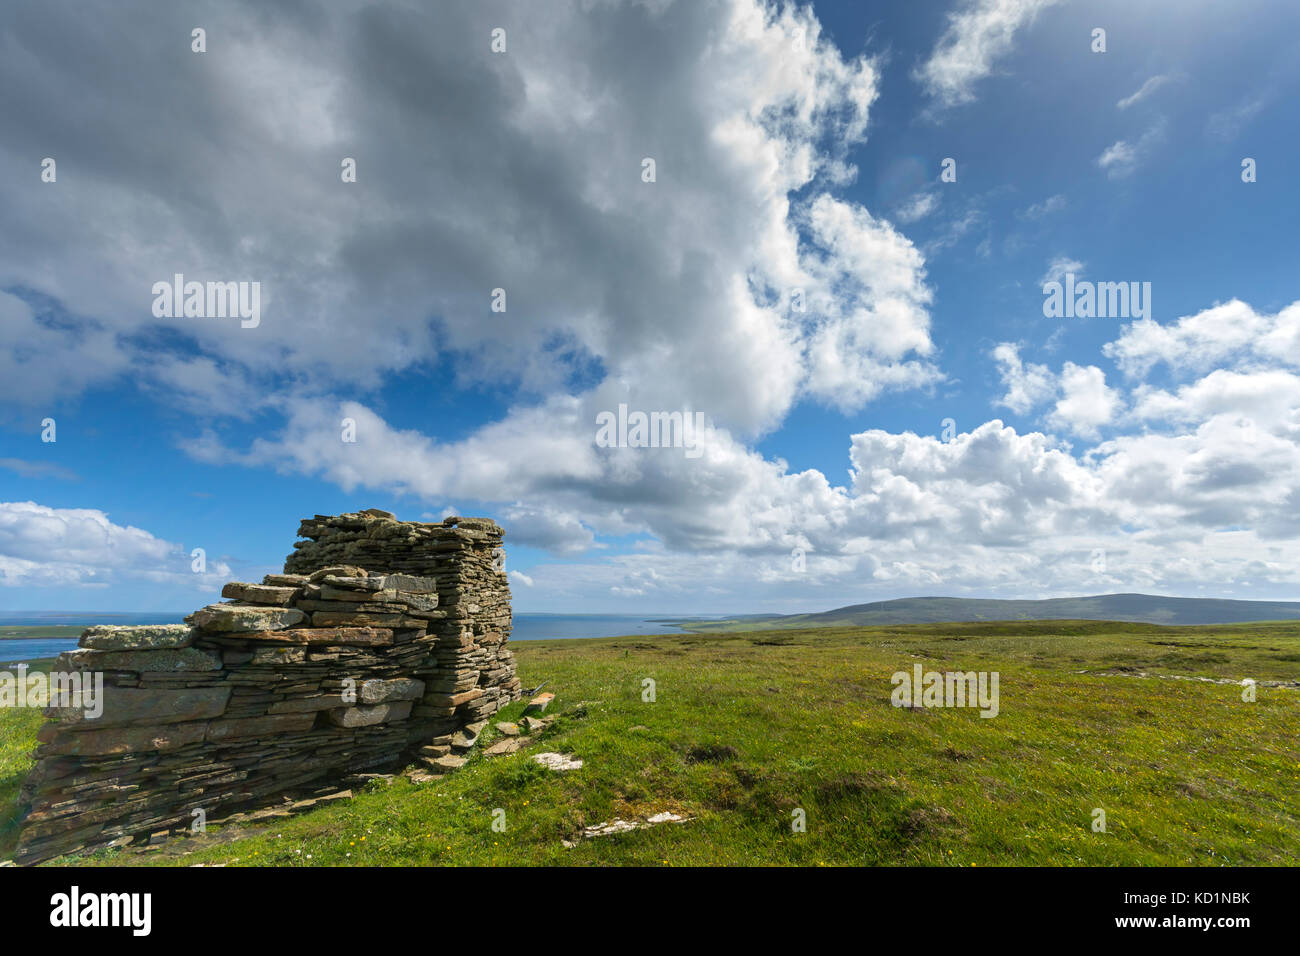 Knitchen Hill and Blotchnie Fold from the large cairn on Faraclett Head, Rousay, Orkney Islands, Scotland, UK. - Stock Image